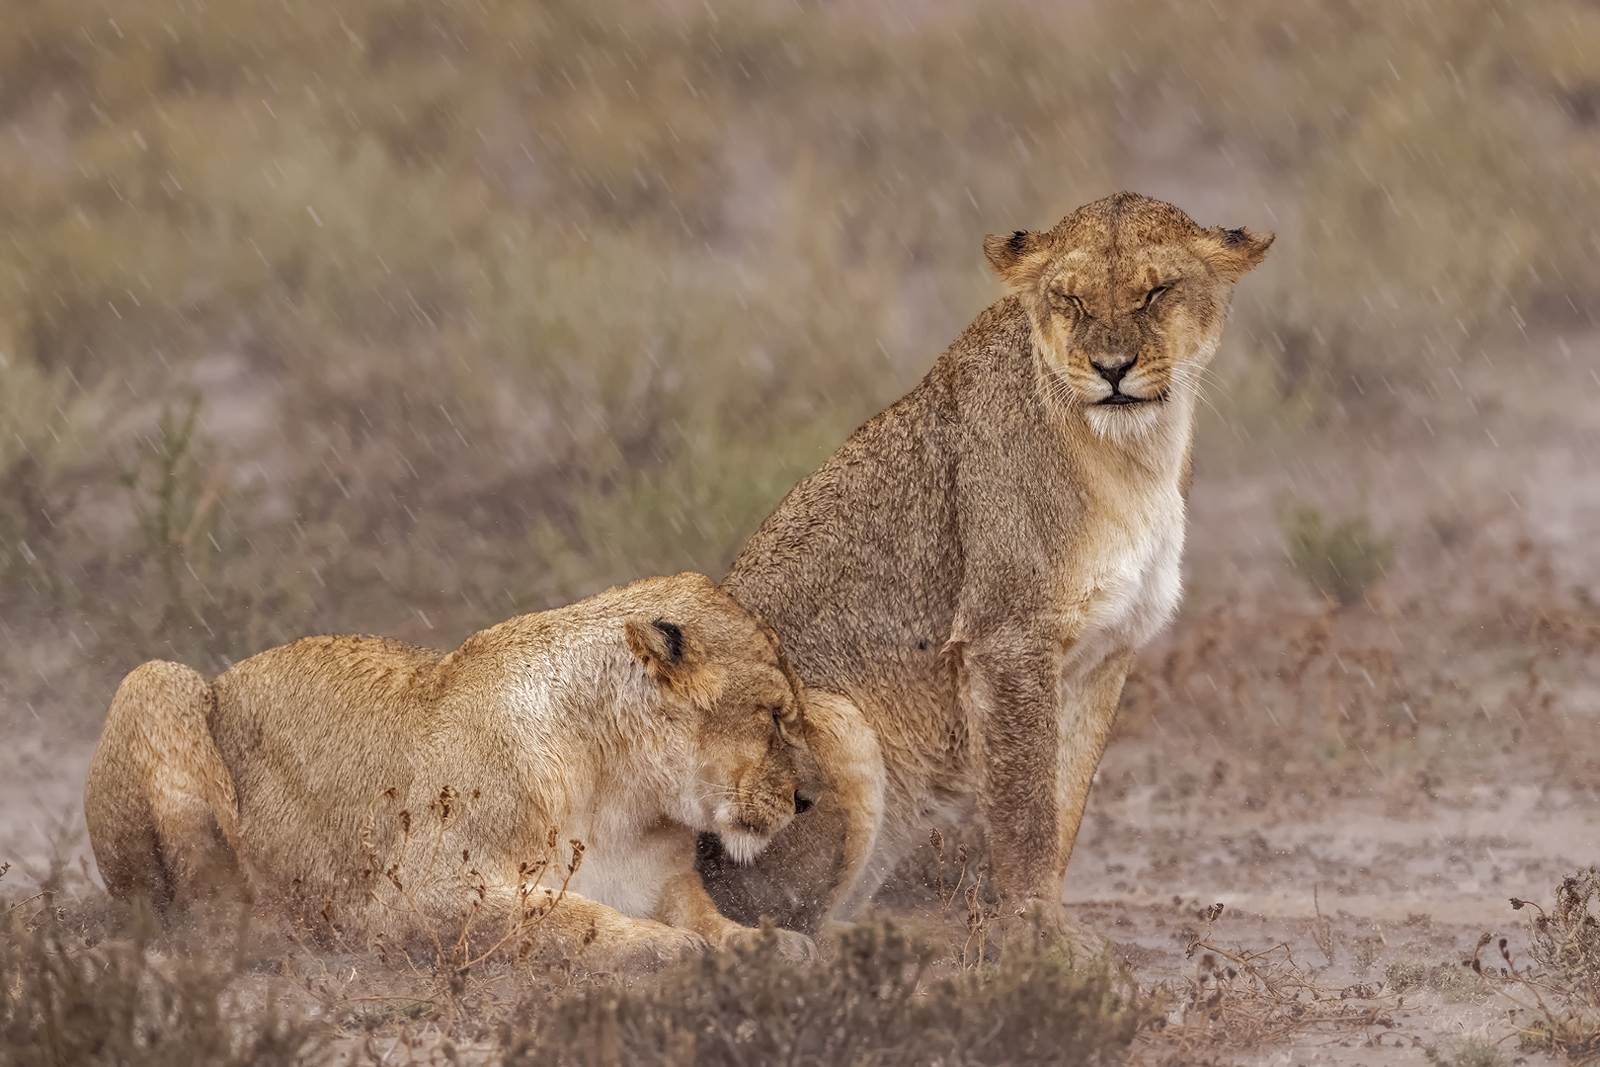 Lionesses sitting in the rain in Kgalagadi Transfrontier Park